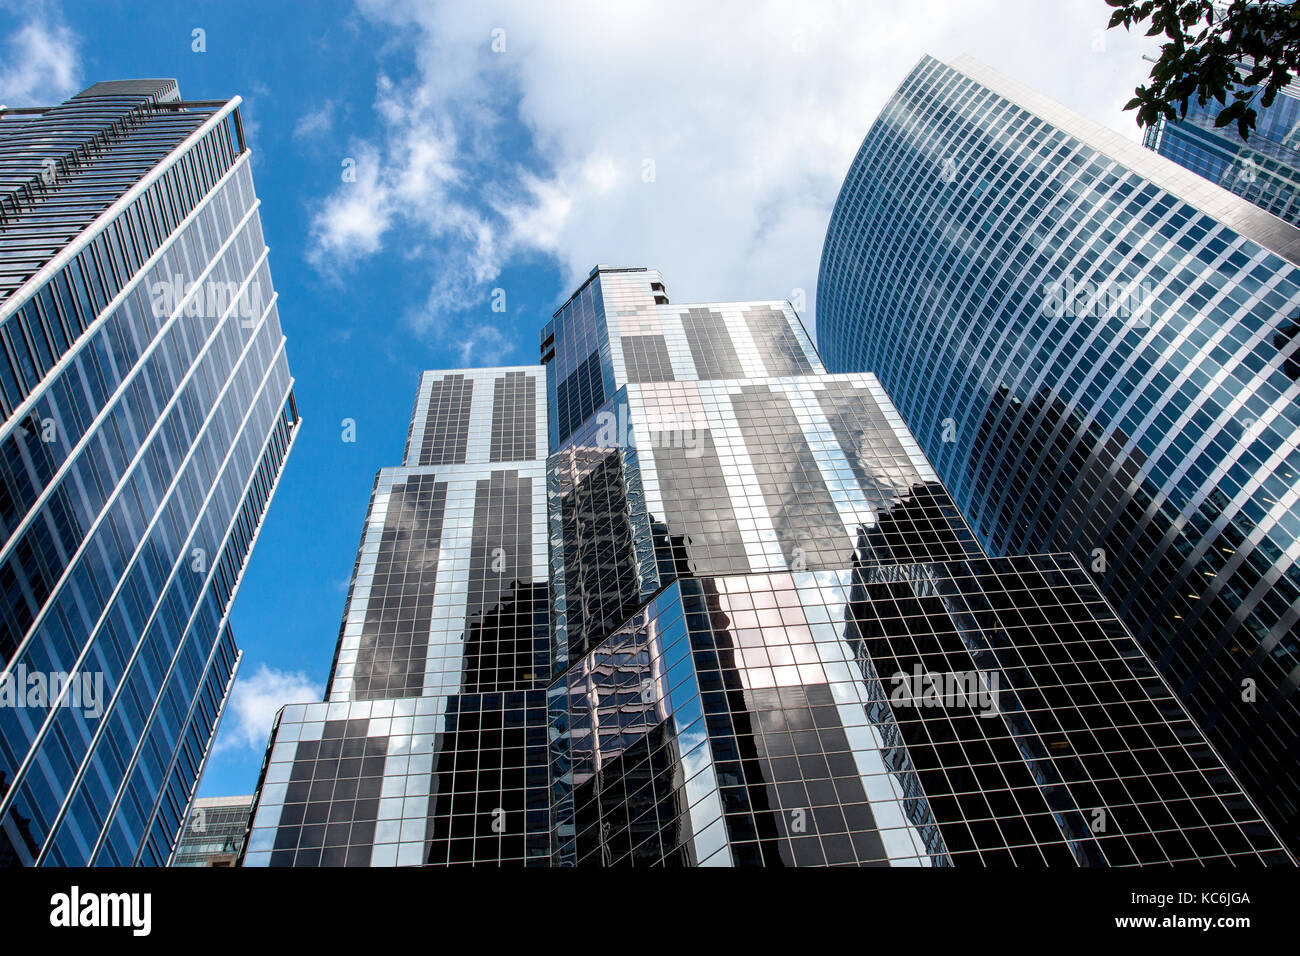 Skyscrapers of Chicago financial district and a cloudy sky. - Stock Image